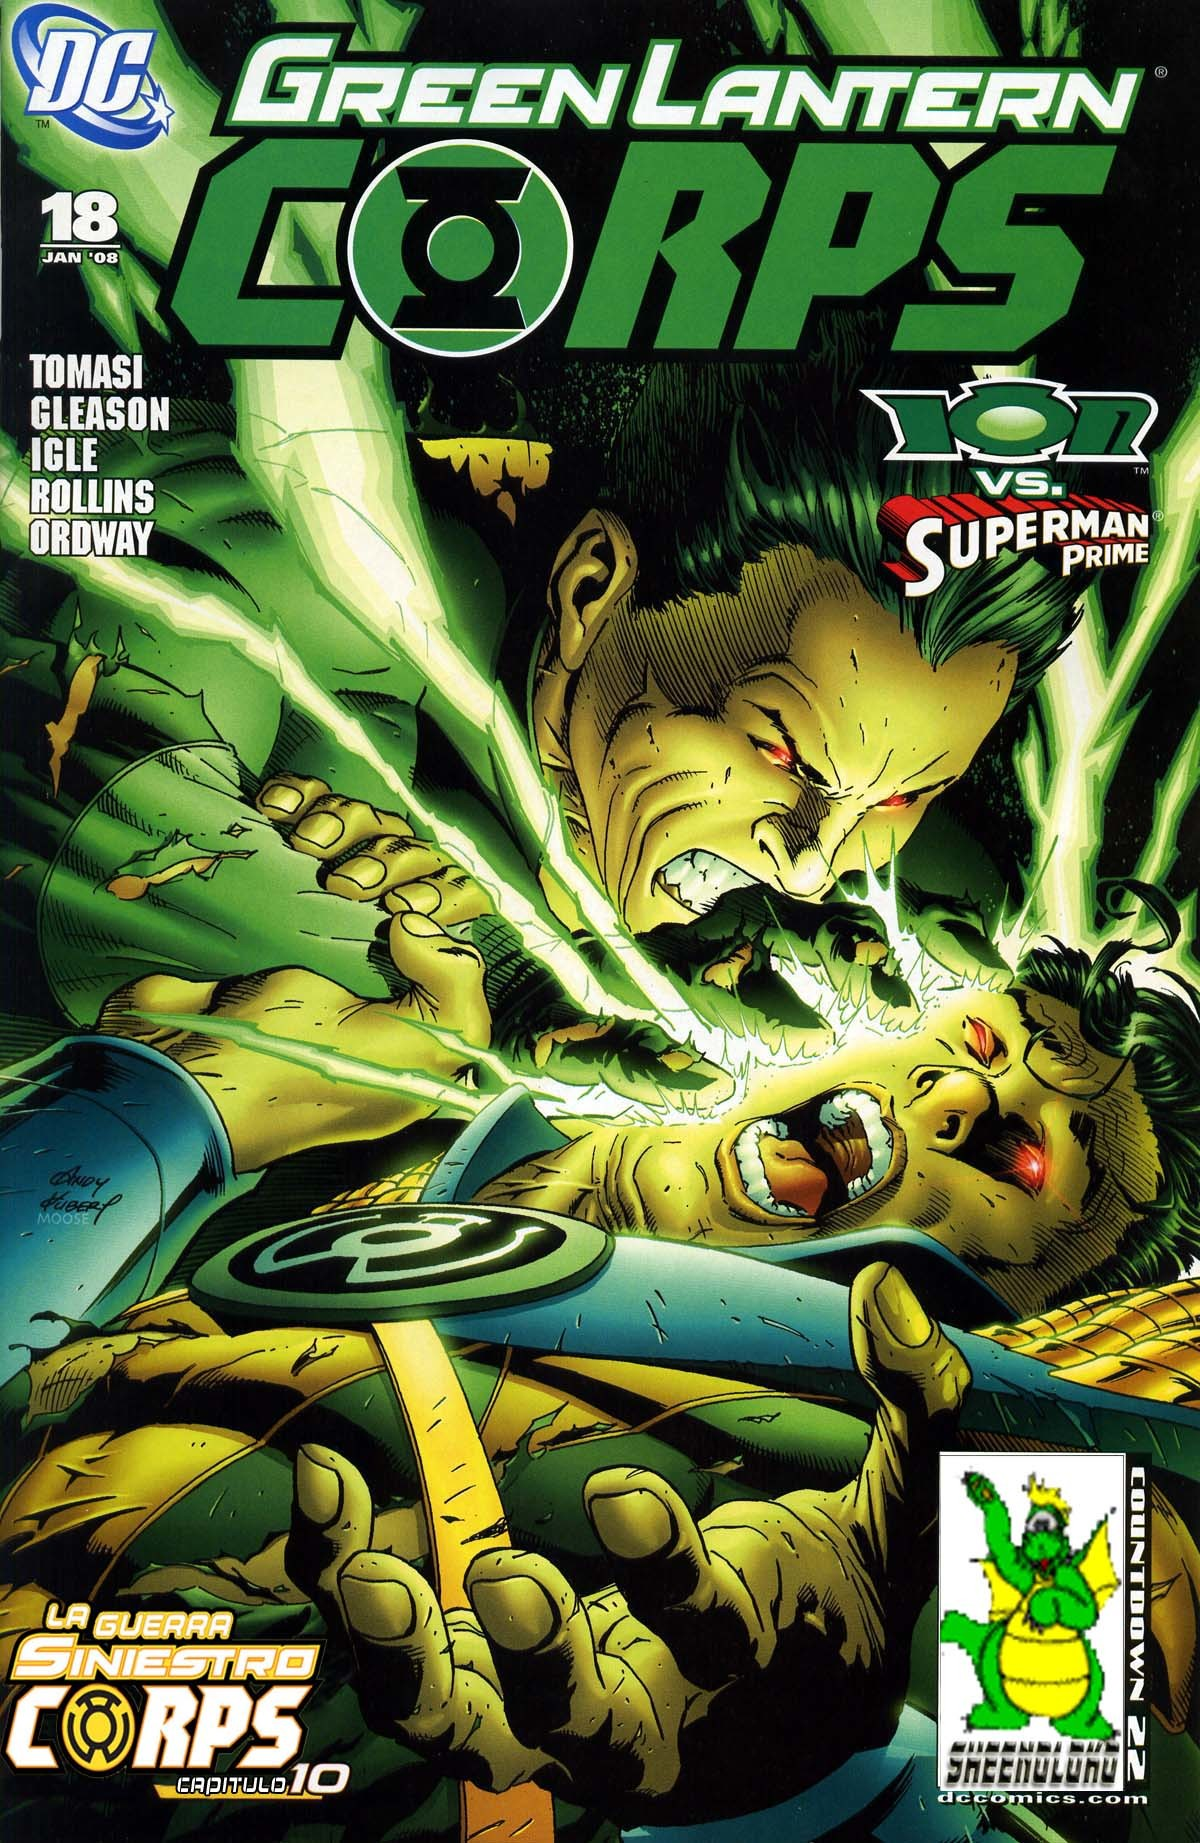 Green lantern: siniestro corps war vol. 18